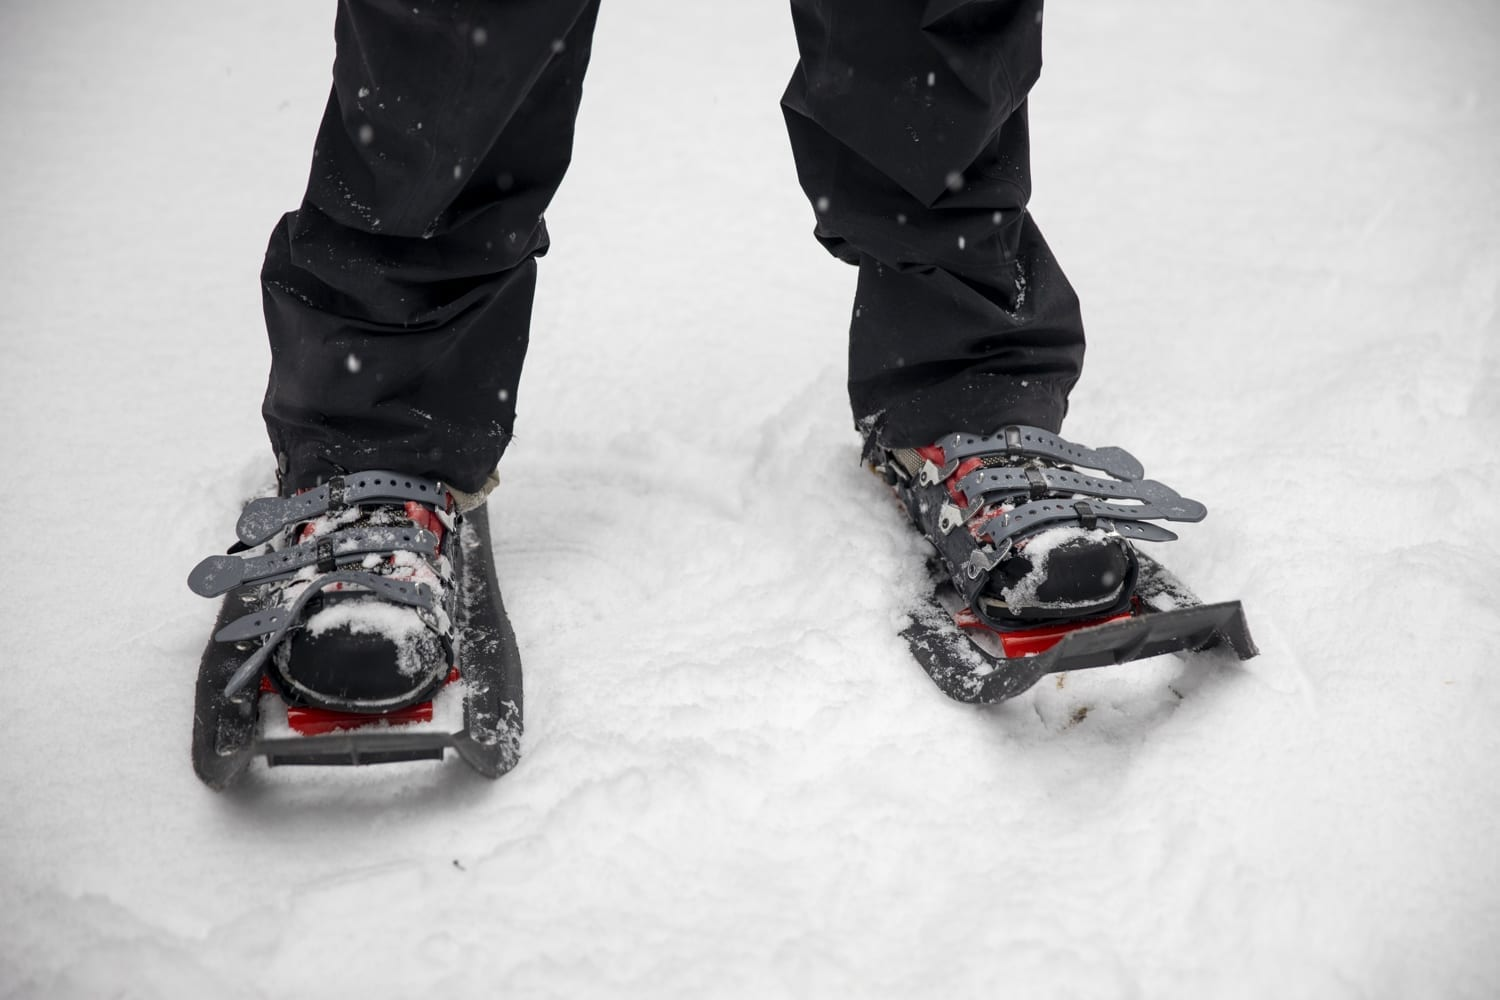 Winter footwear: A critical investment for all-seasons hikers